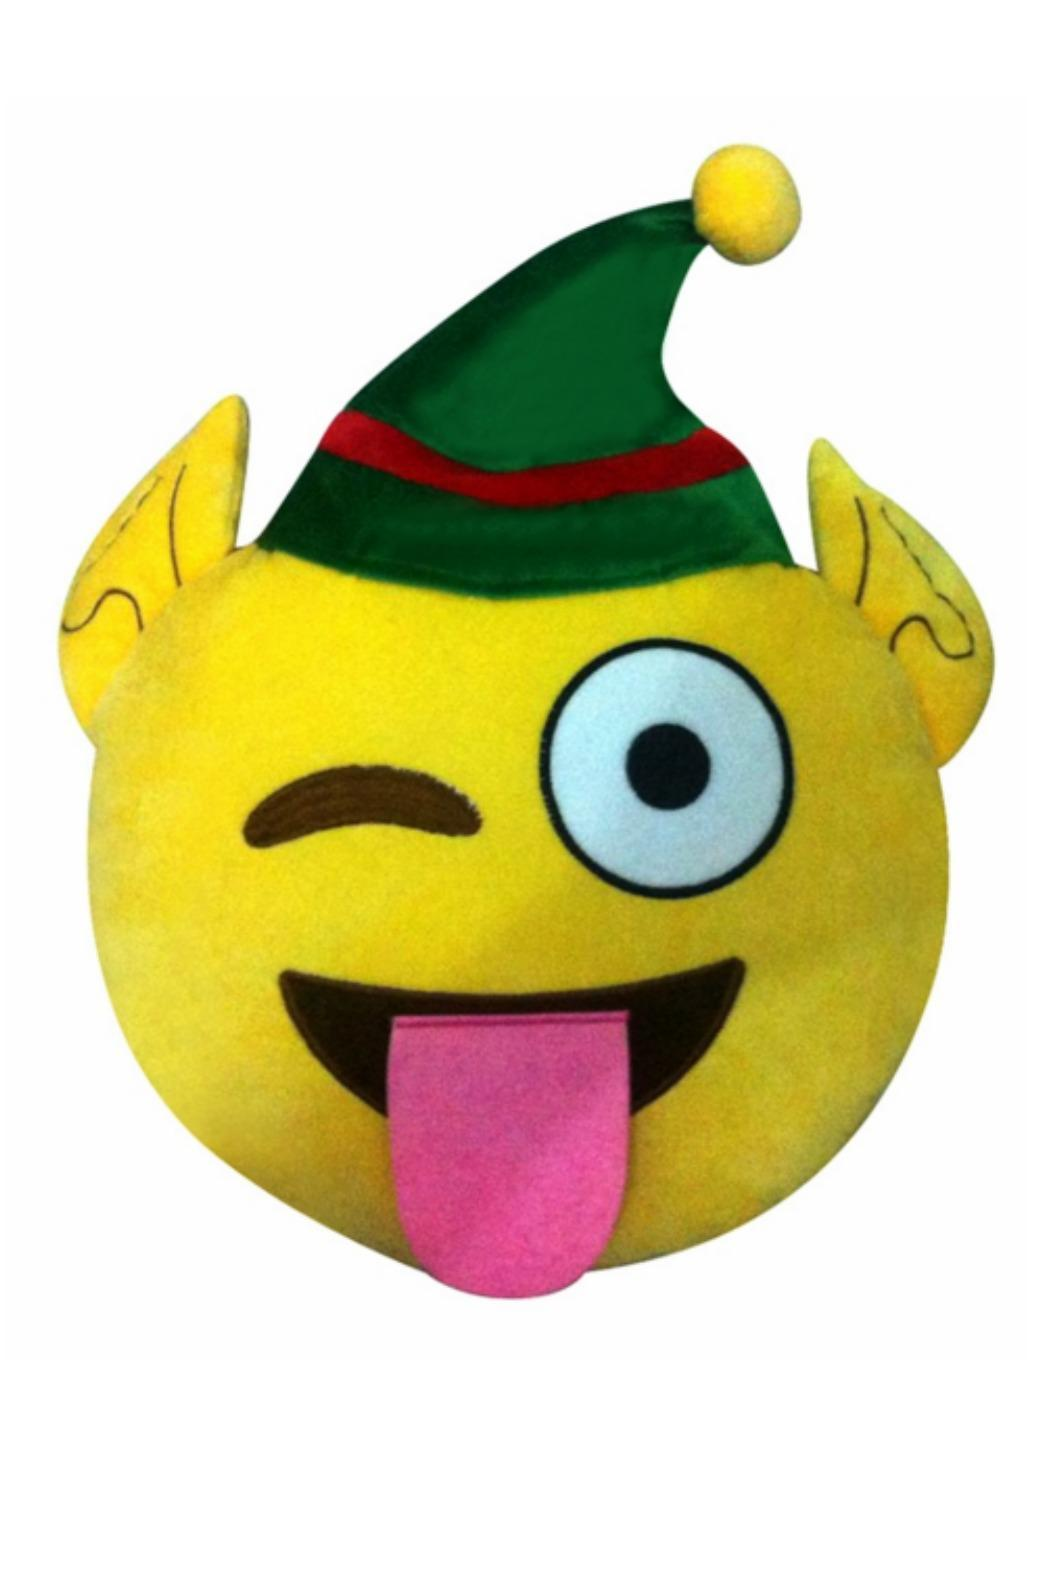 Top Trendz Elf Emoji Pillow From New Jersey By Gotham City